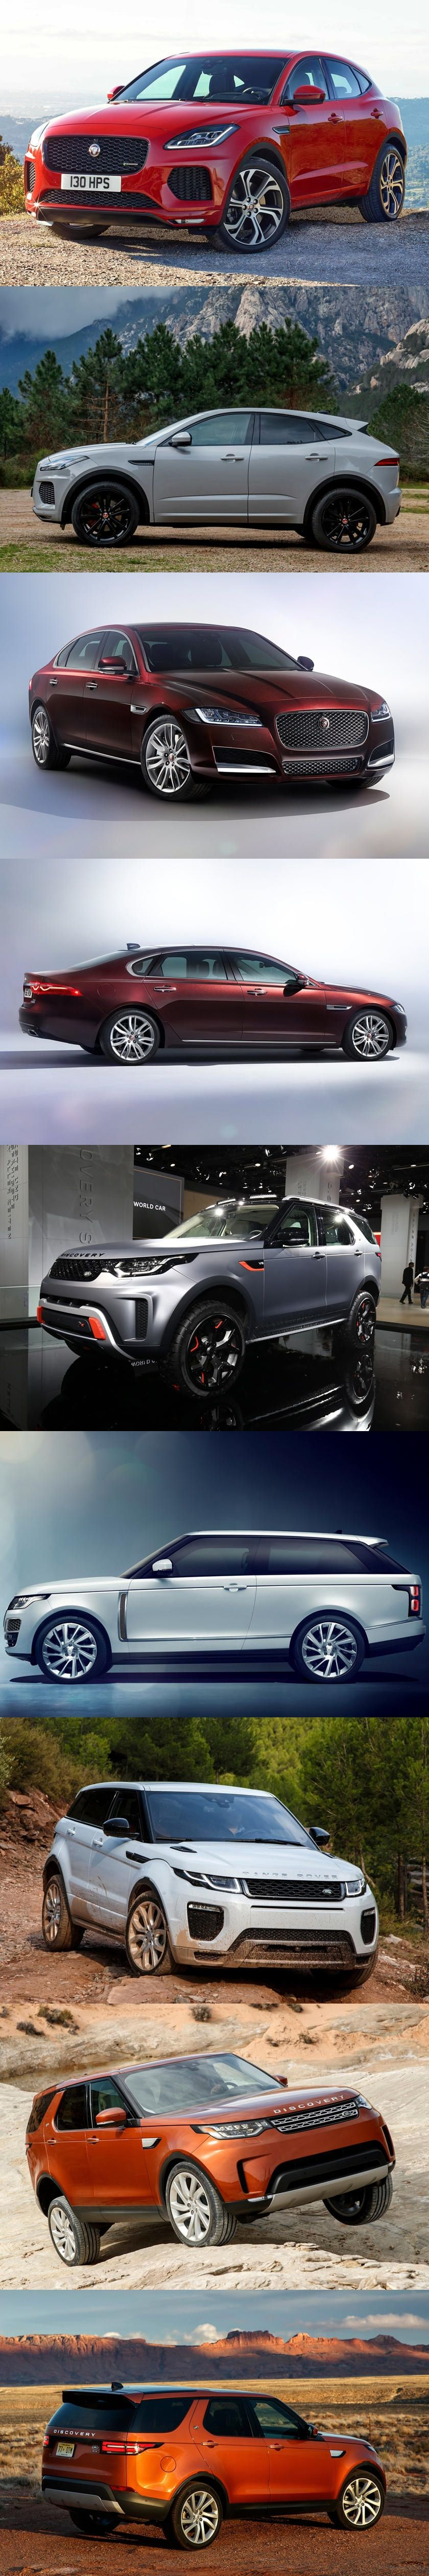 Trading In A Car With Problems >> The Real Reason Why Jaguar Land Rover Has Money Problems